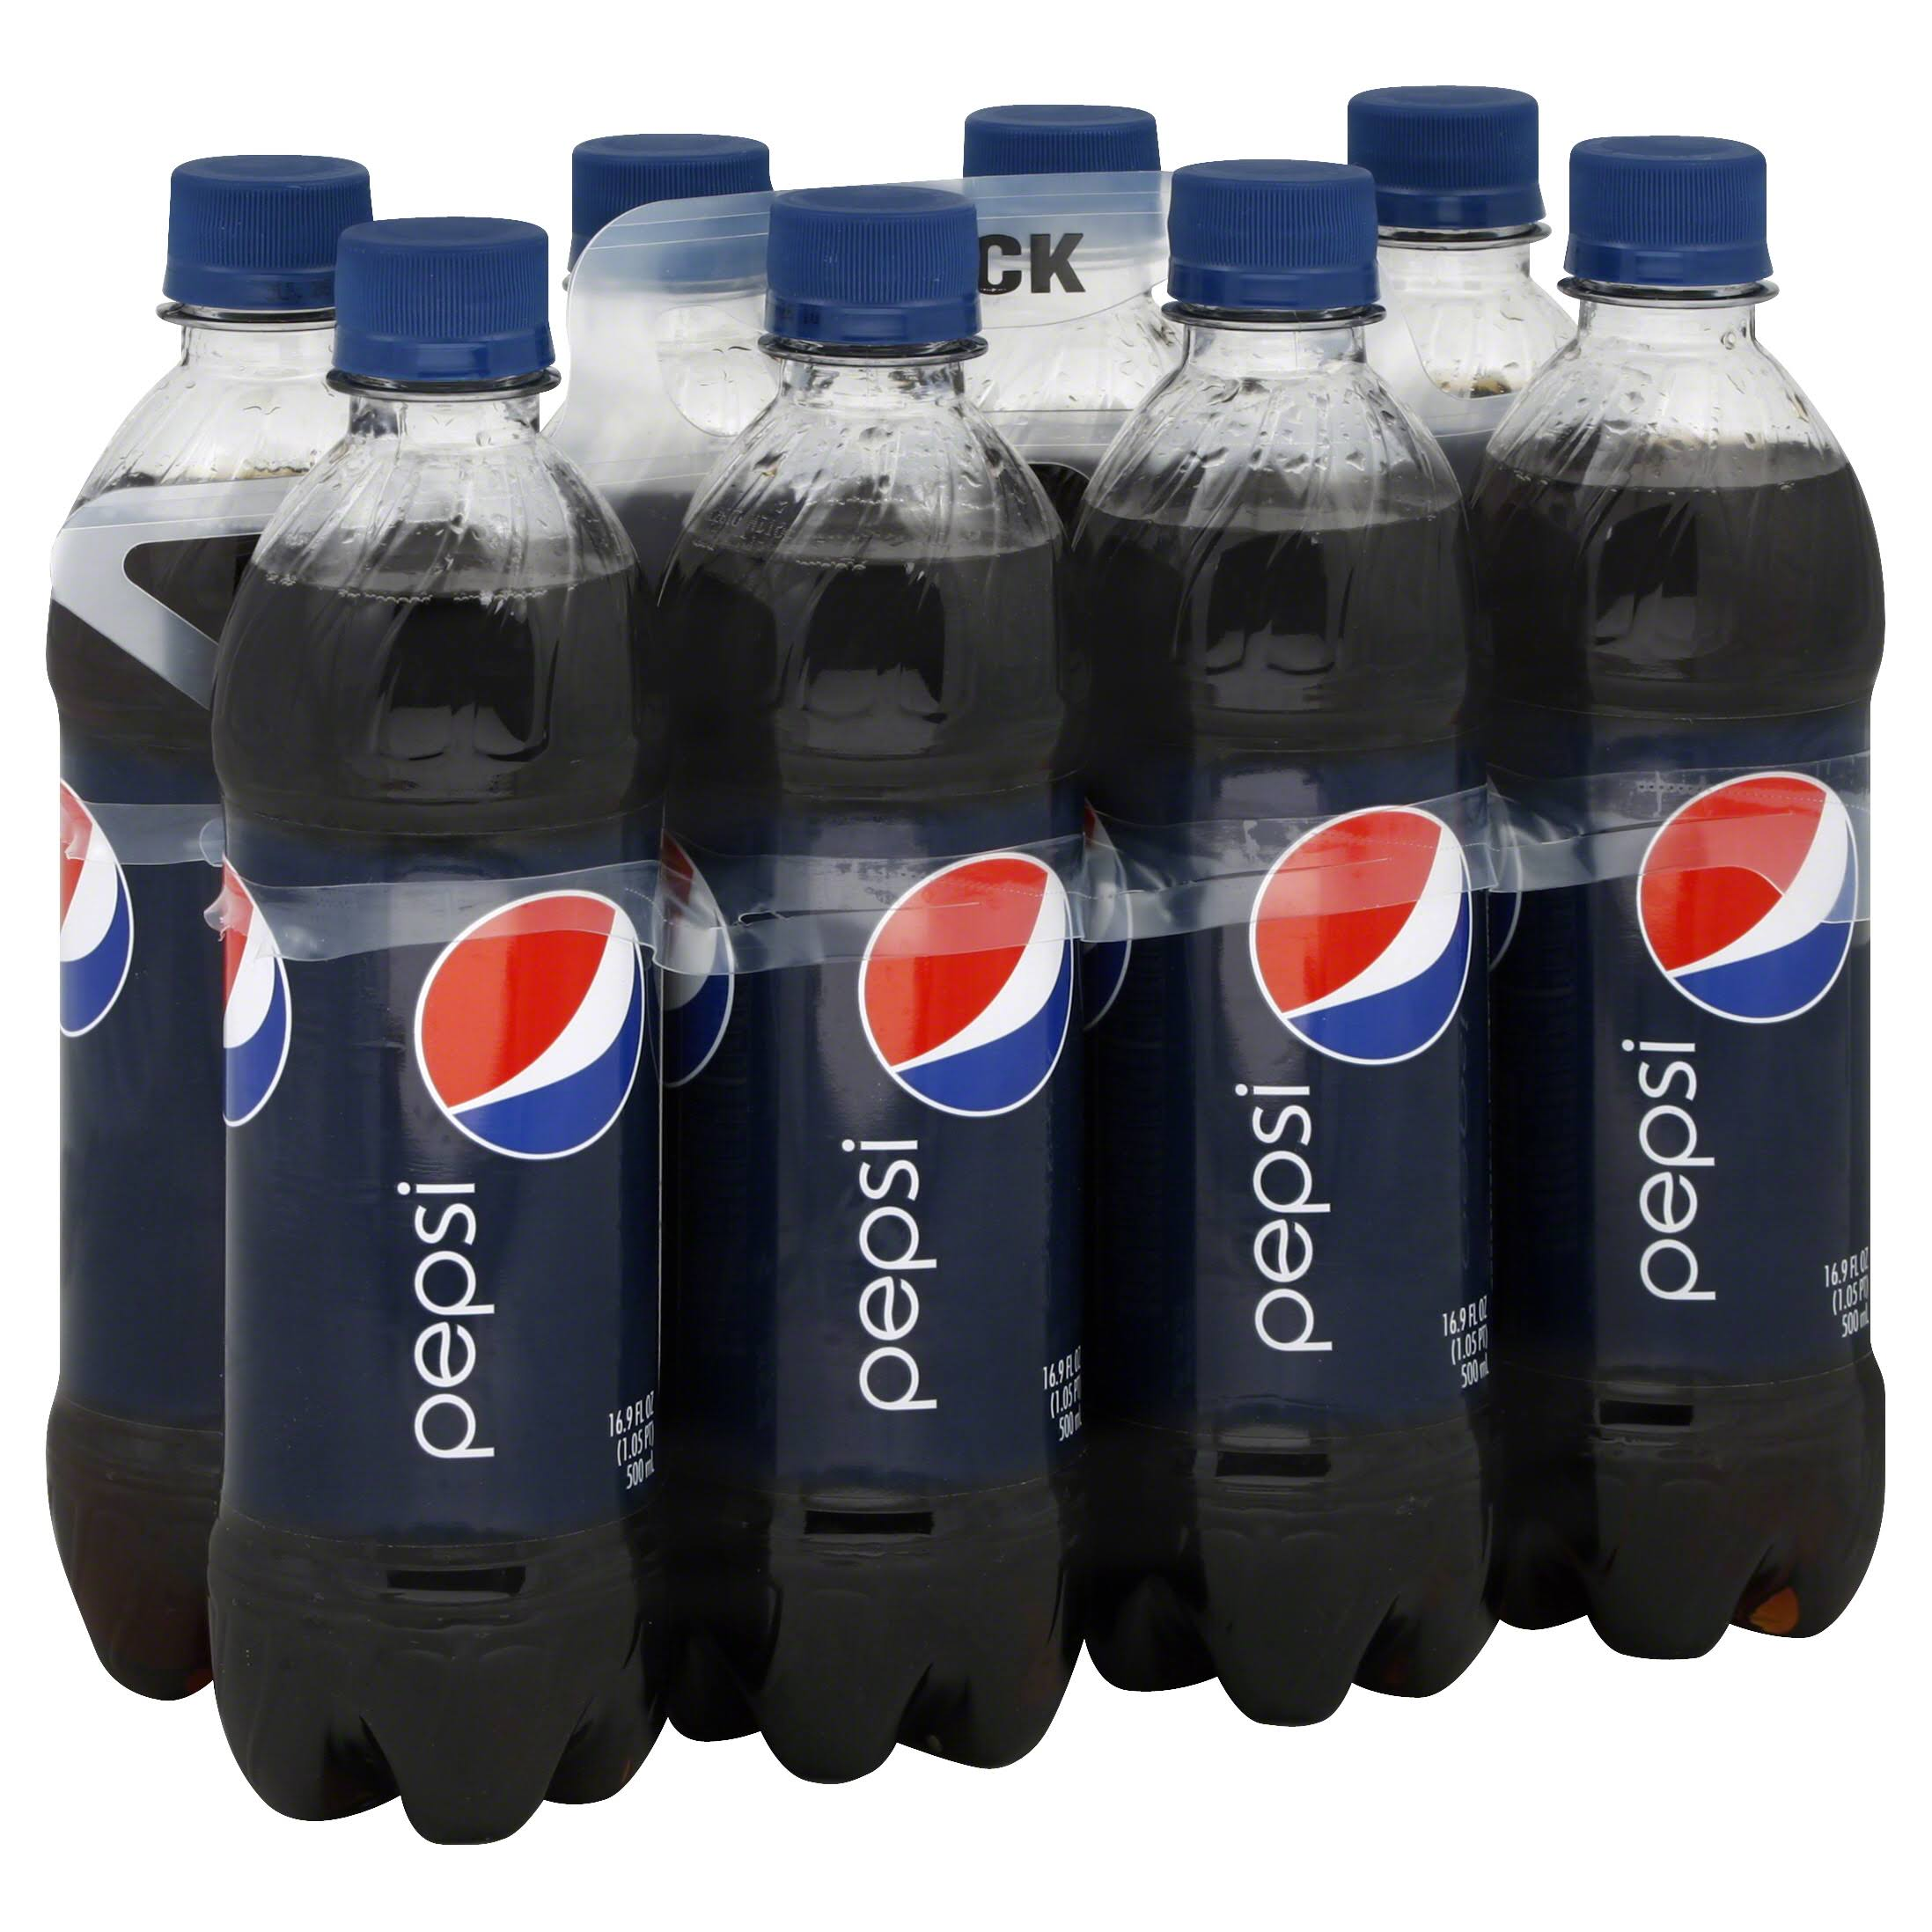 Pepsi® Cola Soda - 8ct, 16.9oz